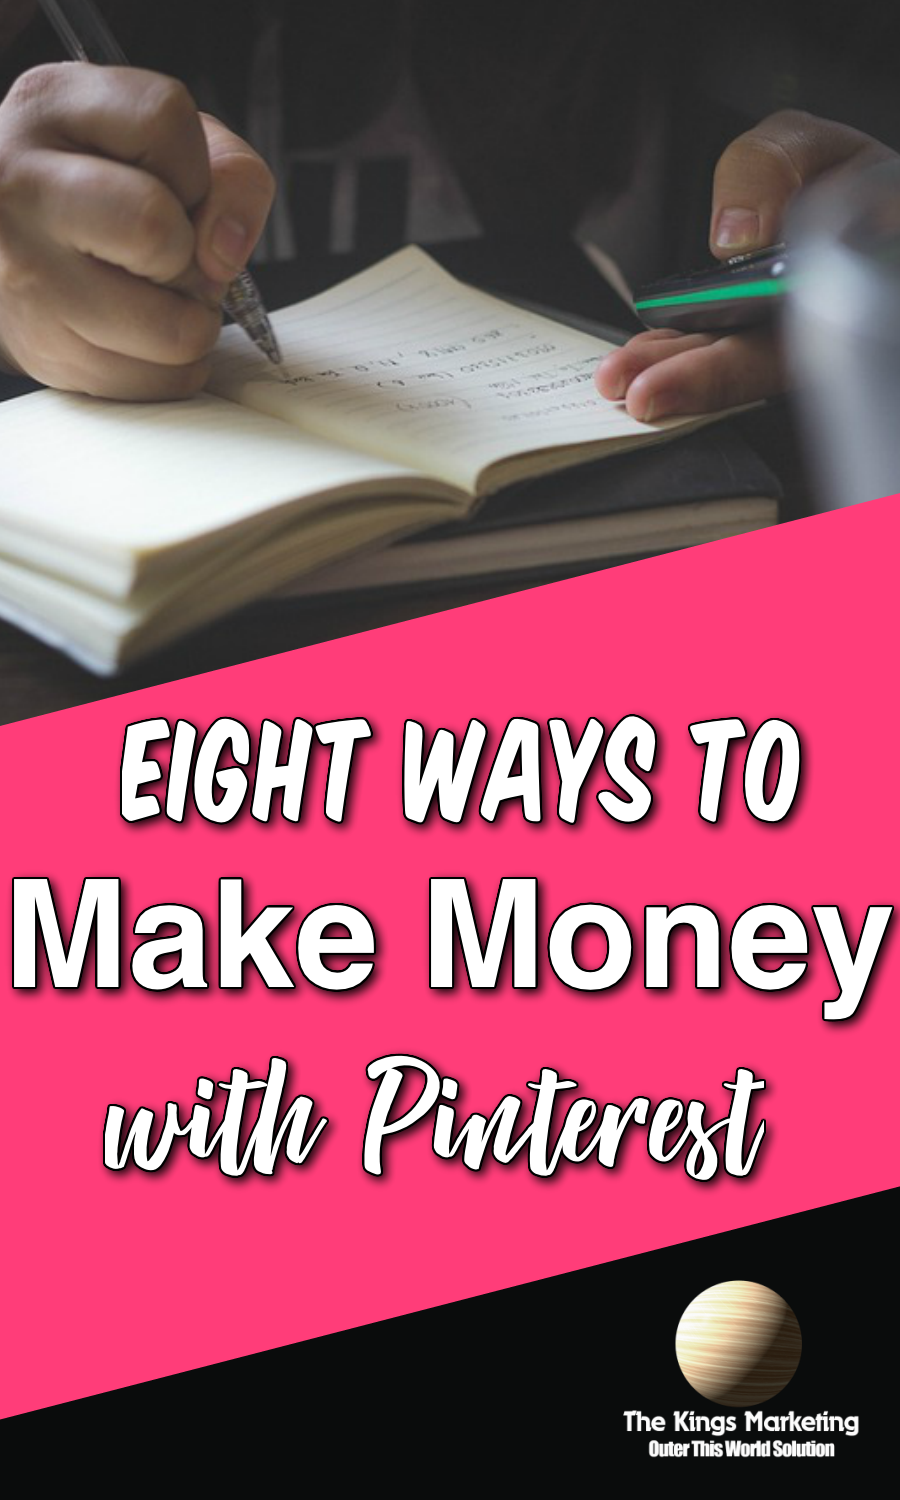 Eight Ways to Make Money with Pinterest